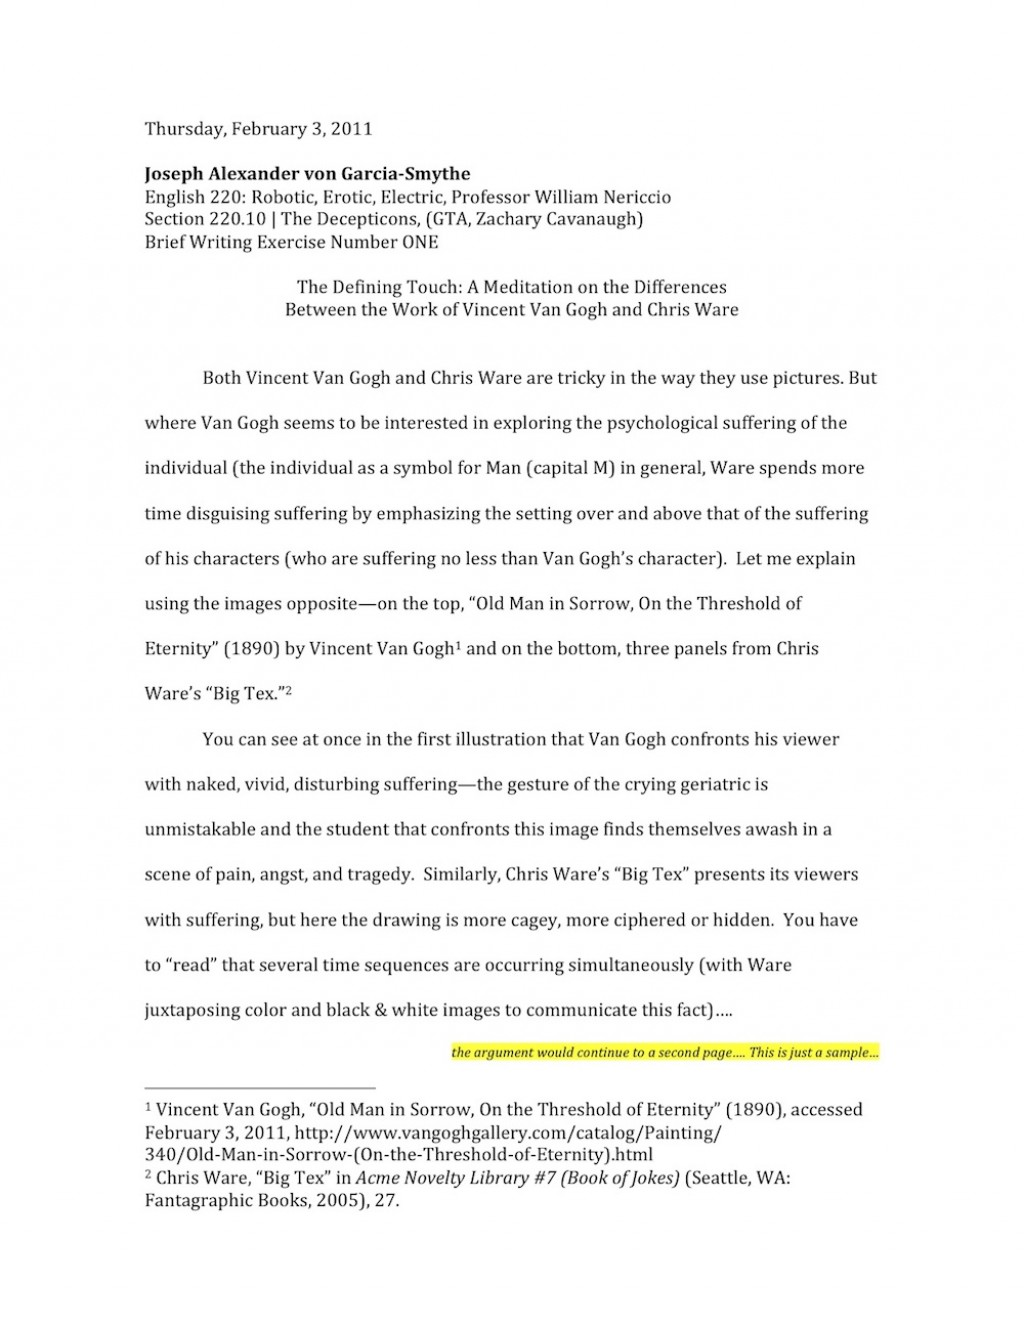 009 Essay Example Nericcio Sampleessay1 Unique Autobiography For Highschool Students Pdf Bibliography Examples Large